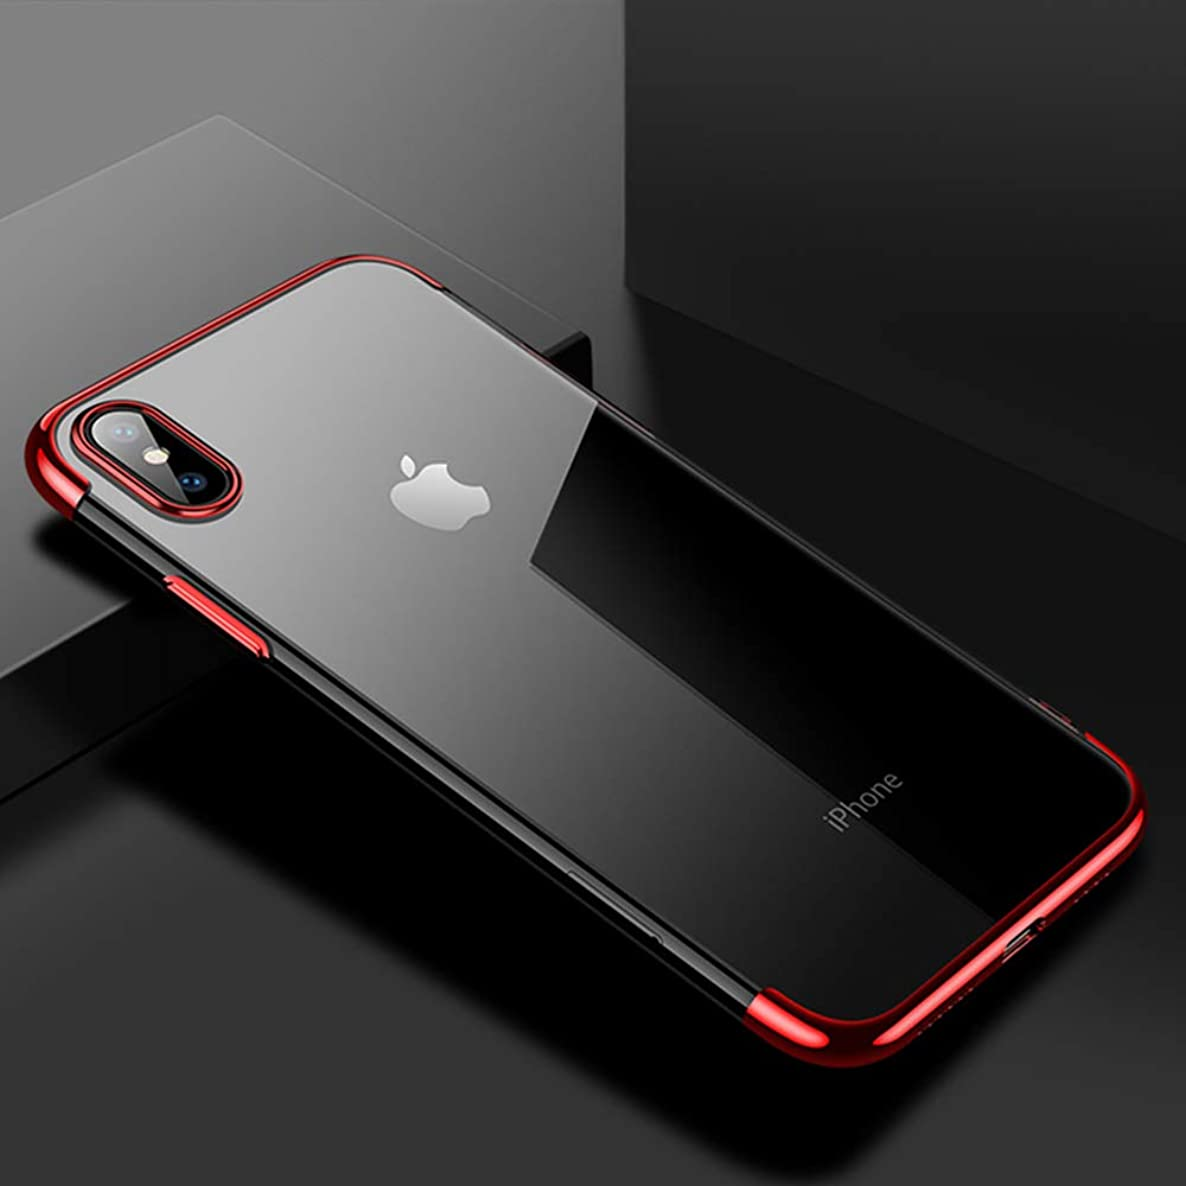 CAFELE soft TPU case for iPhone X Xs Max cases ultra thin transparent plating shining case for iPhone Xs Mixed silicon cover (Red)